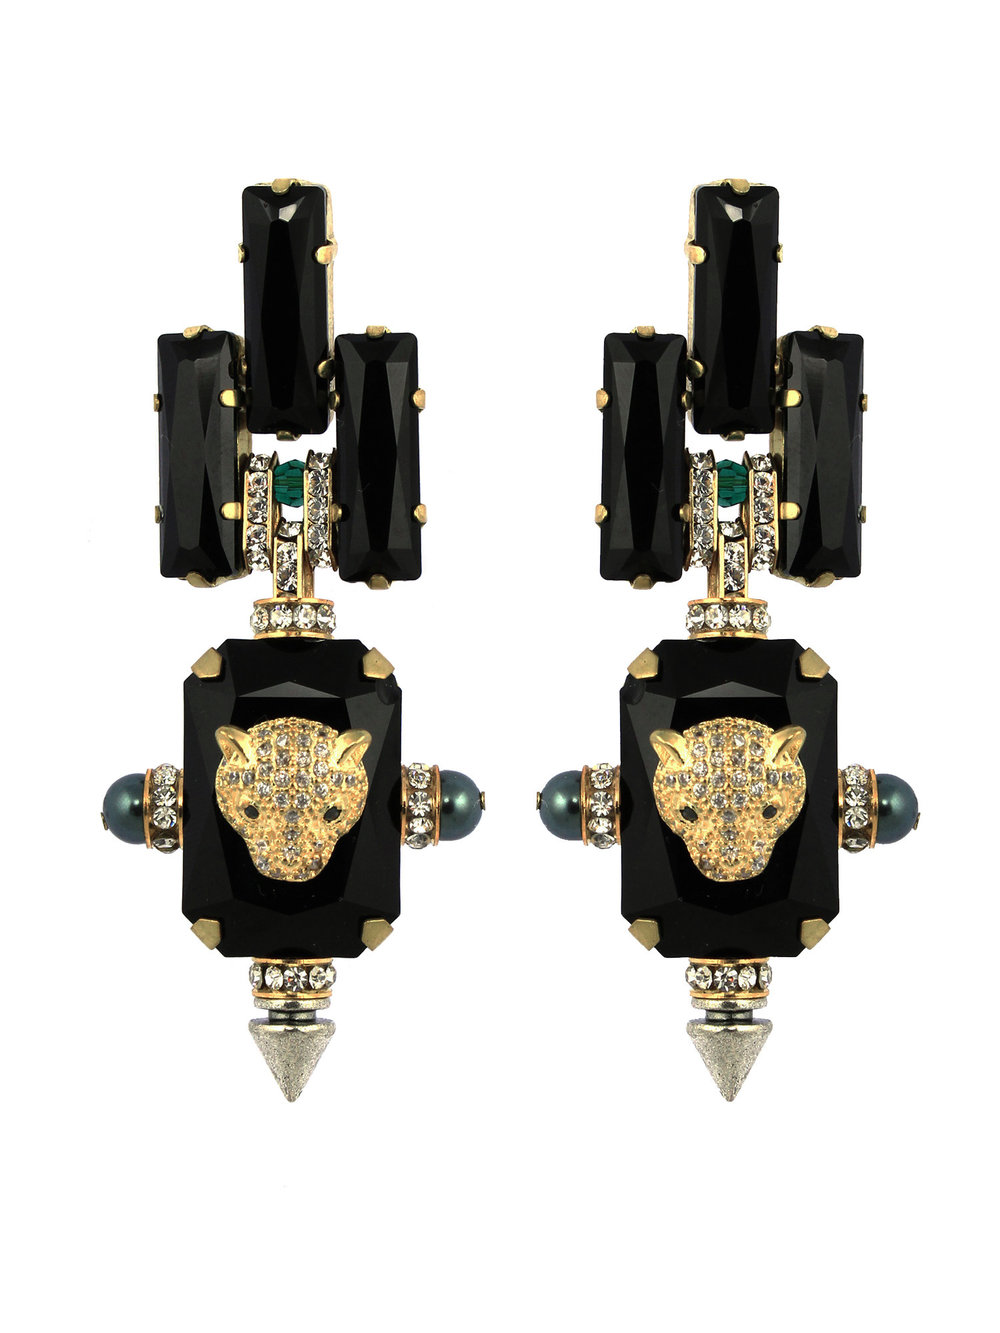 228E Black Deco Spiked Drop Earrings.jpg